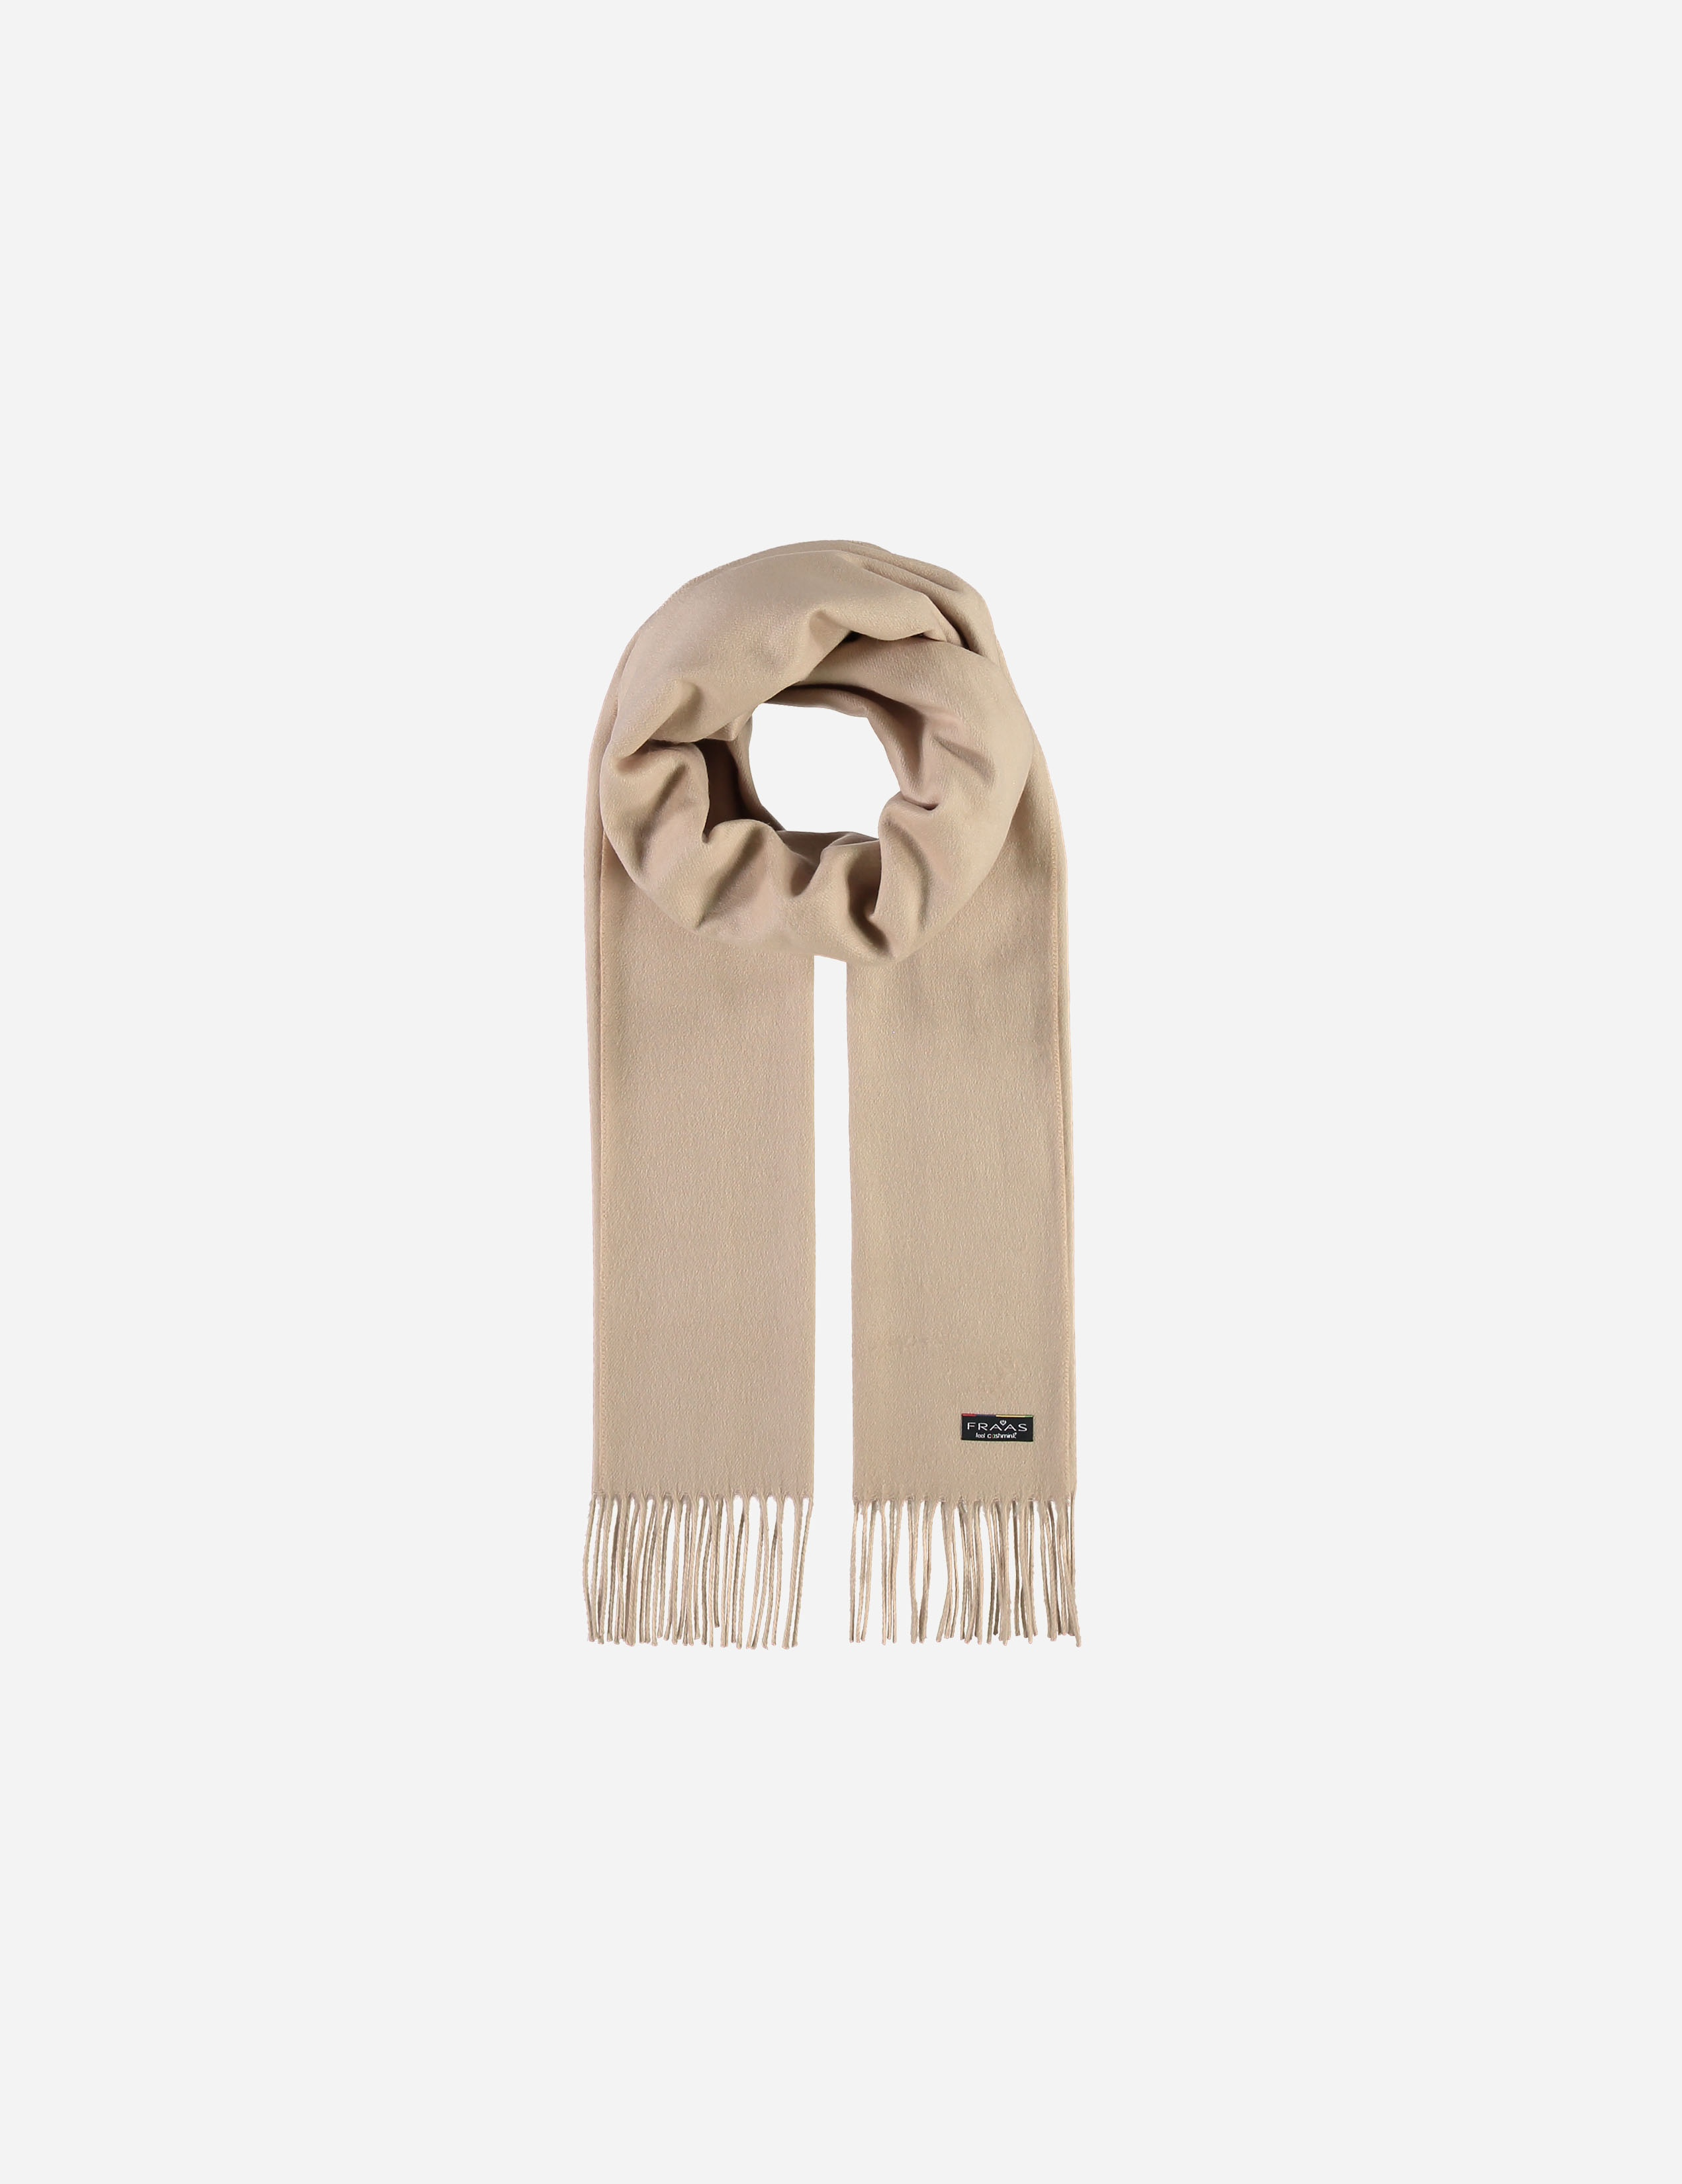 Solid Beige- $32.00 Cashmink, Made in Germany 4035419045461